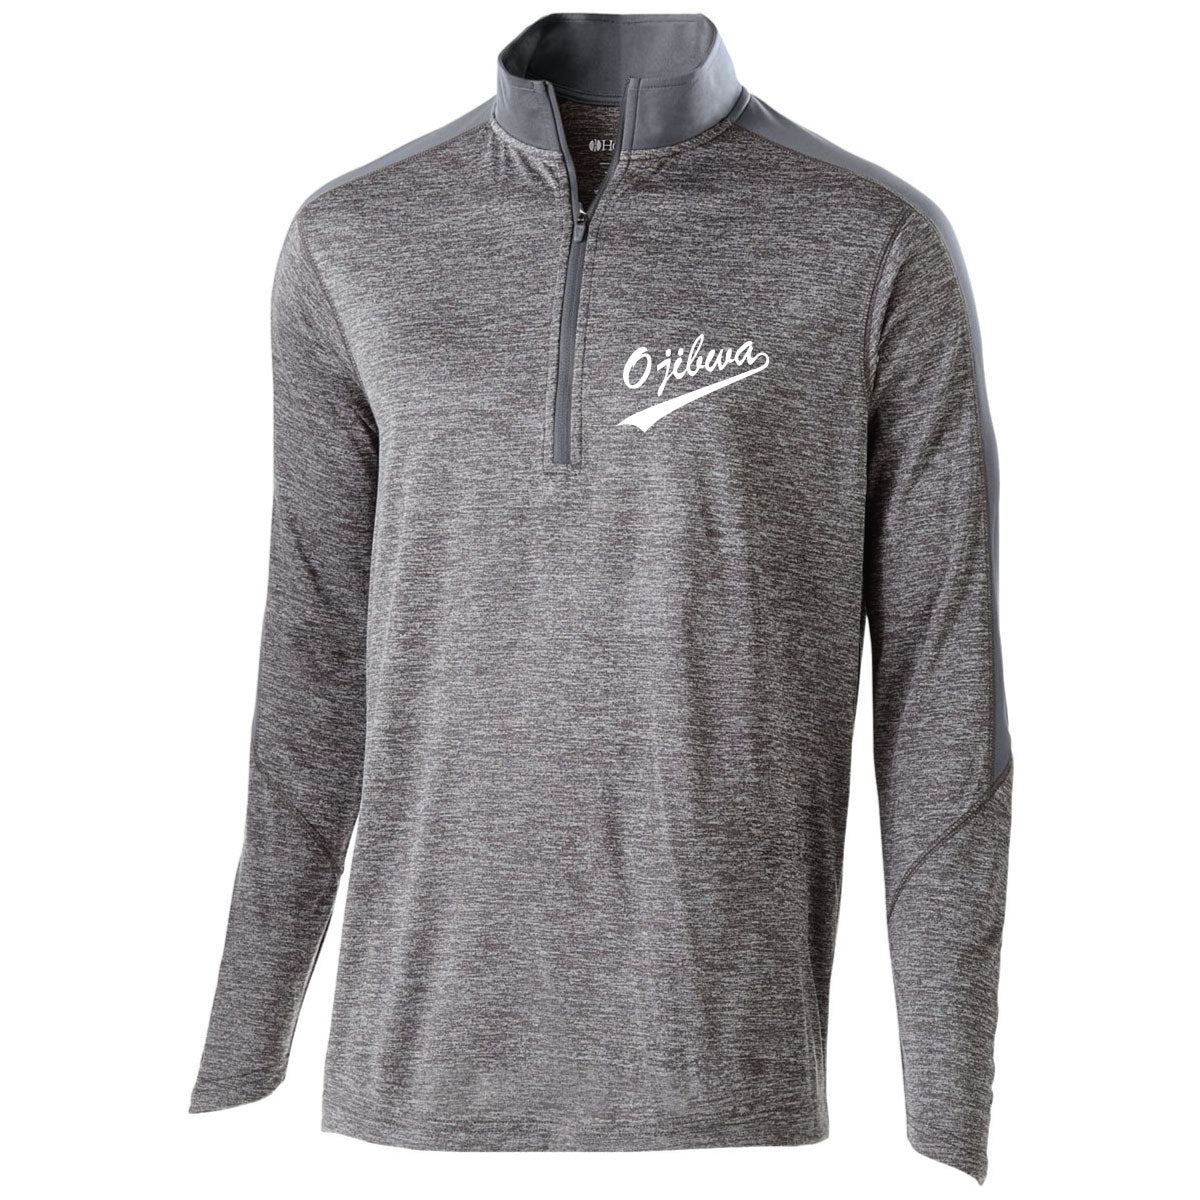 Camp Ojibwa 1/2 Zip Performance Pullover